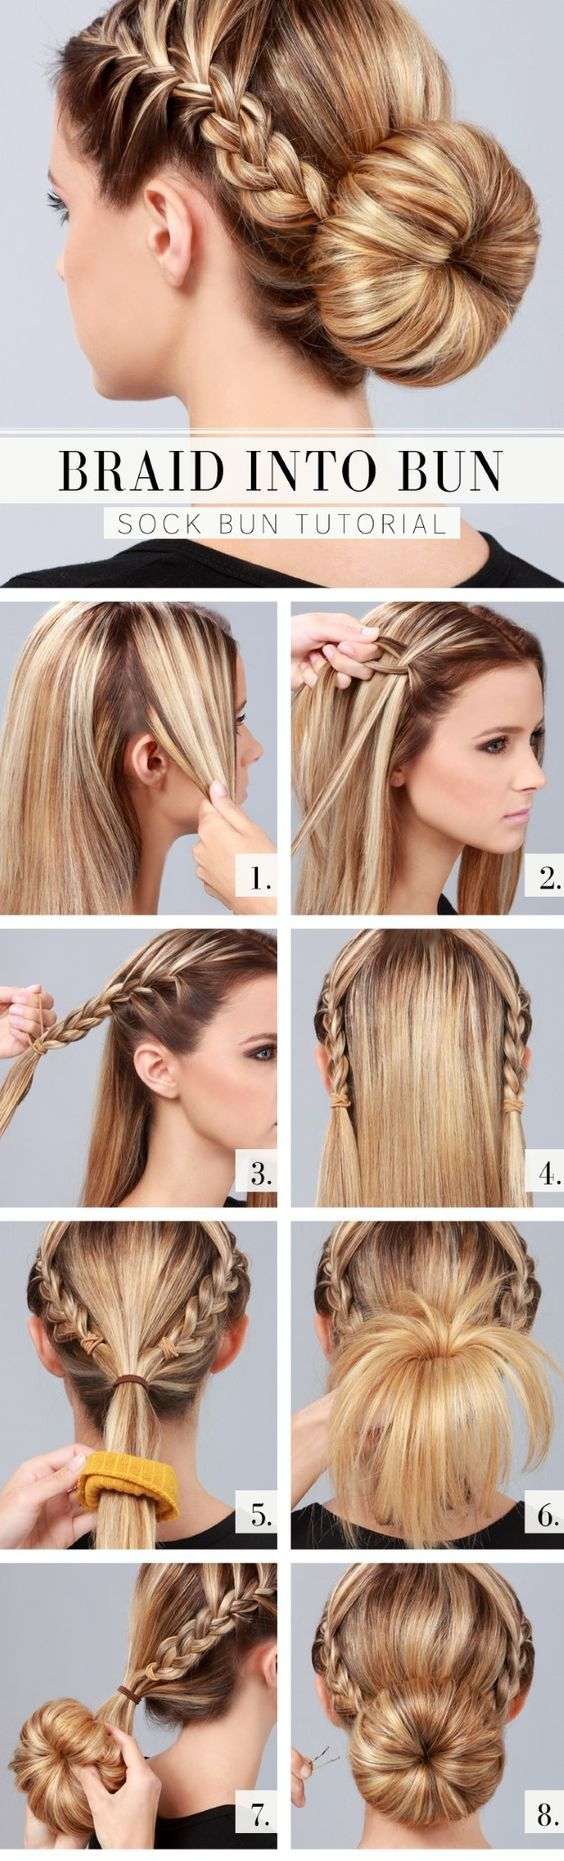 24 Perfect Prom Hairstyles   Gorgeous Hair Updo For Long and Short Hair by Makeup Tutorials http://makeuptutorials.com/hair-styles-24-perfect-prom-hairstyles/: